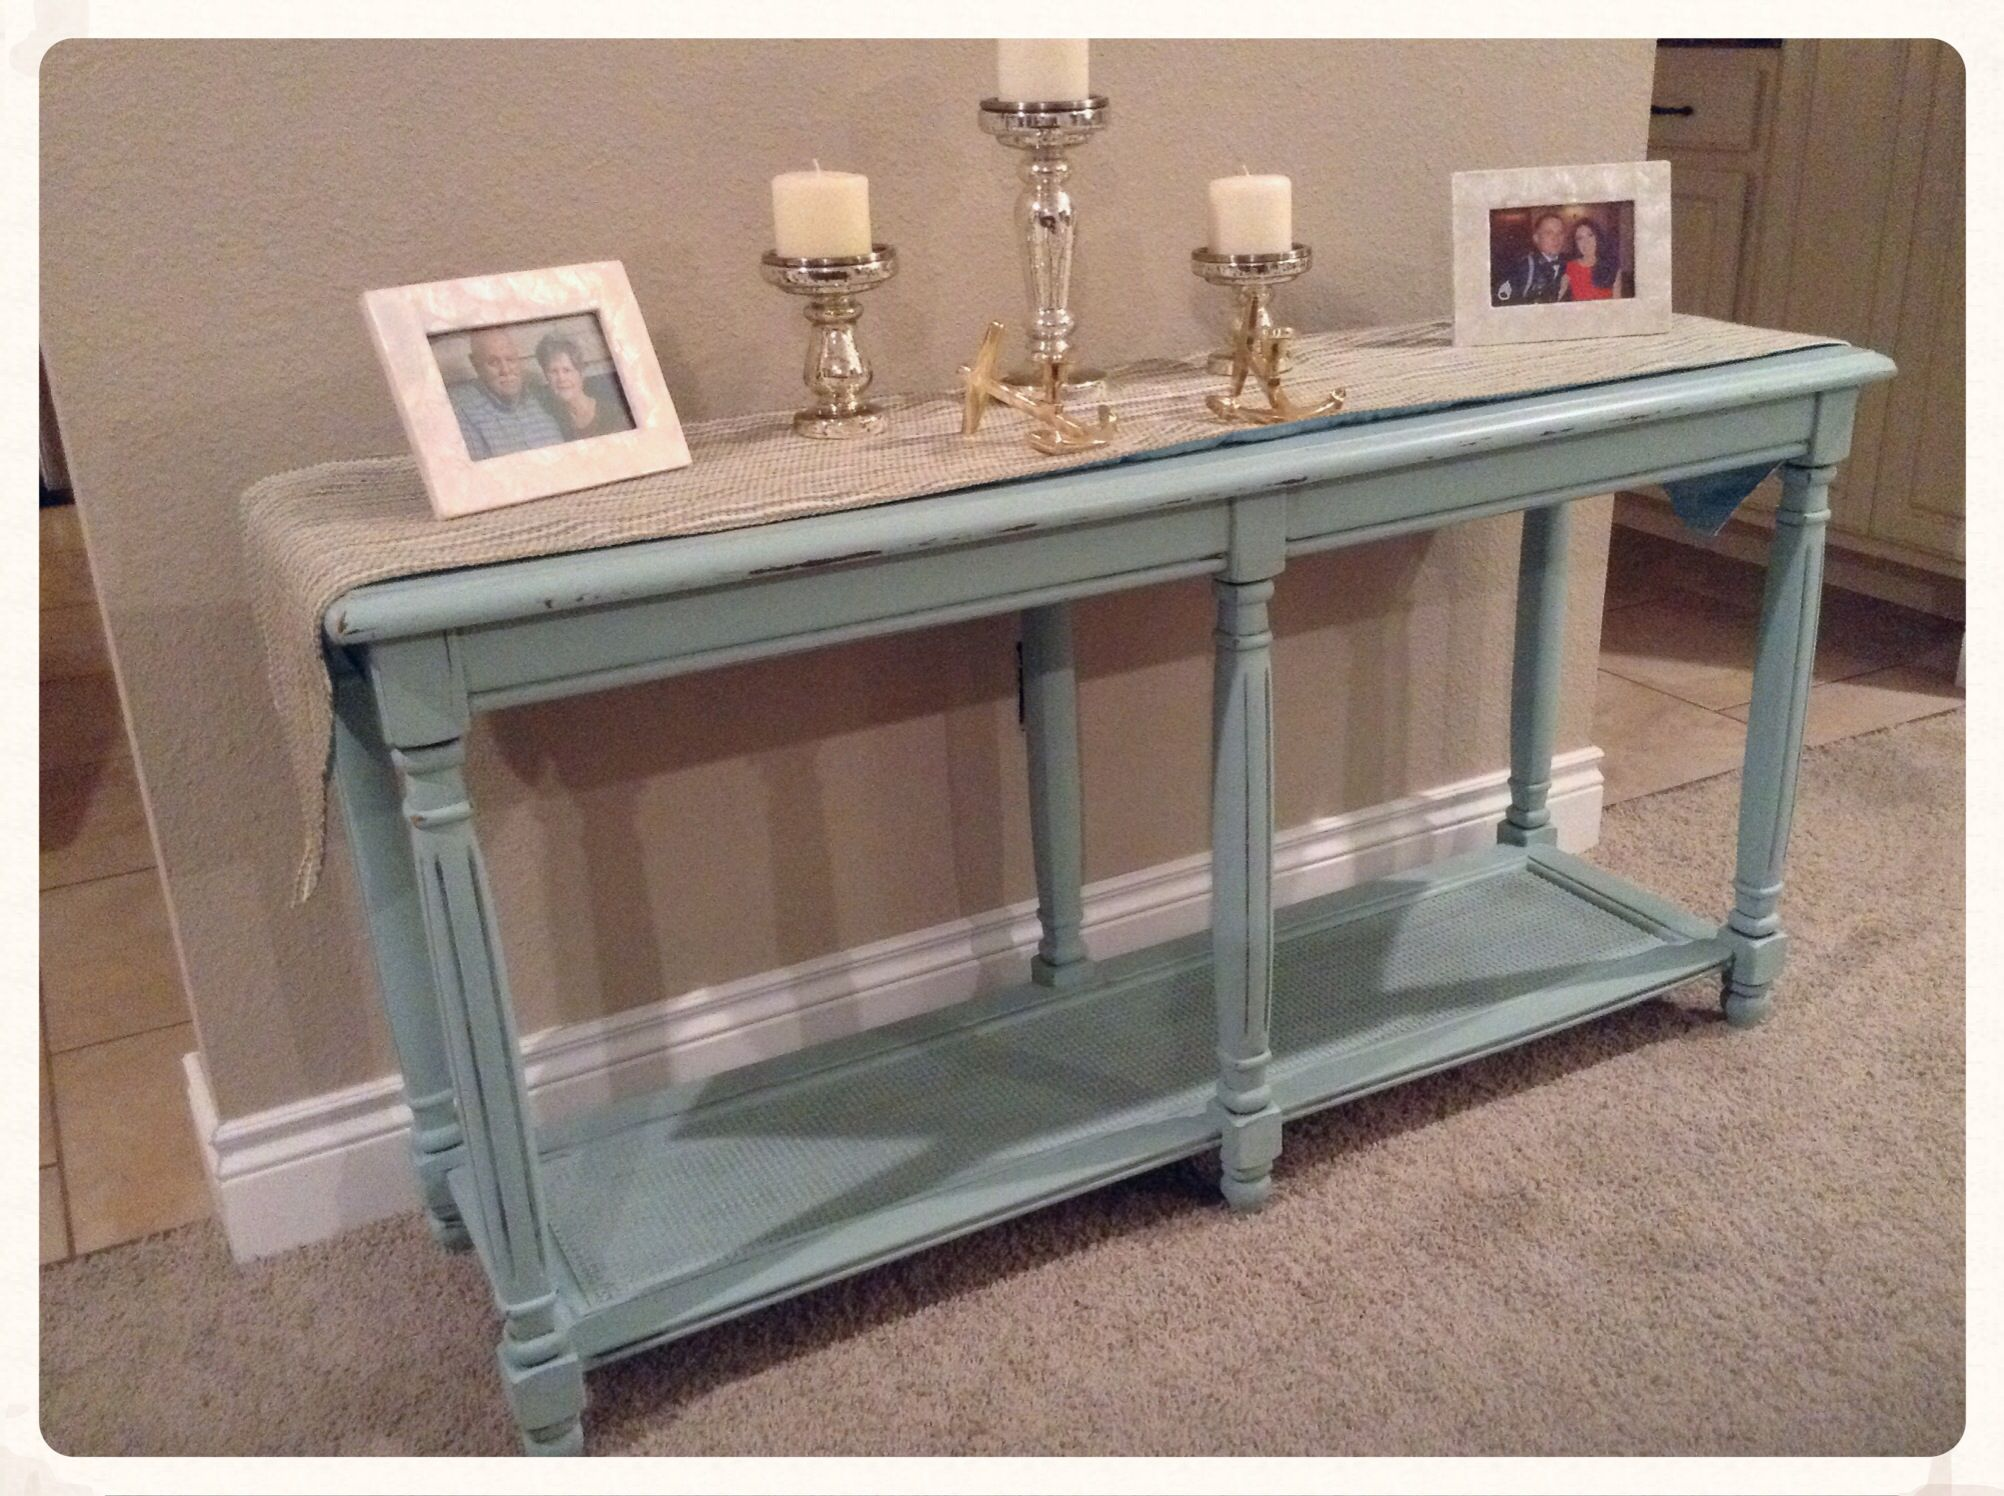 Pin By Cassandra Gonzales On My Completed Designs Recipes Etc Blue Painted Furniture Furniture Home Decor Styles